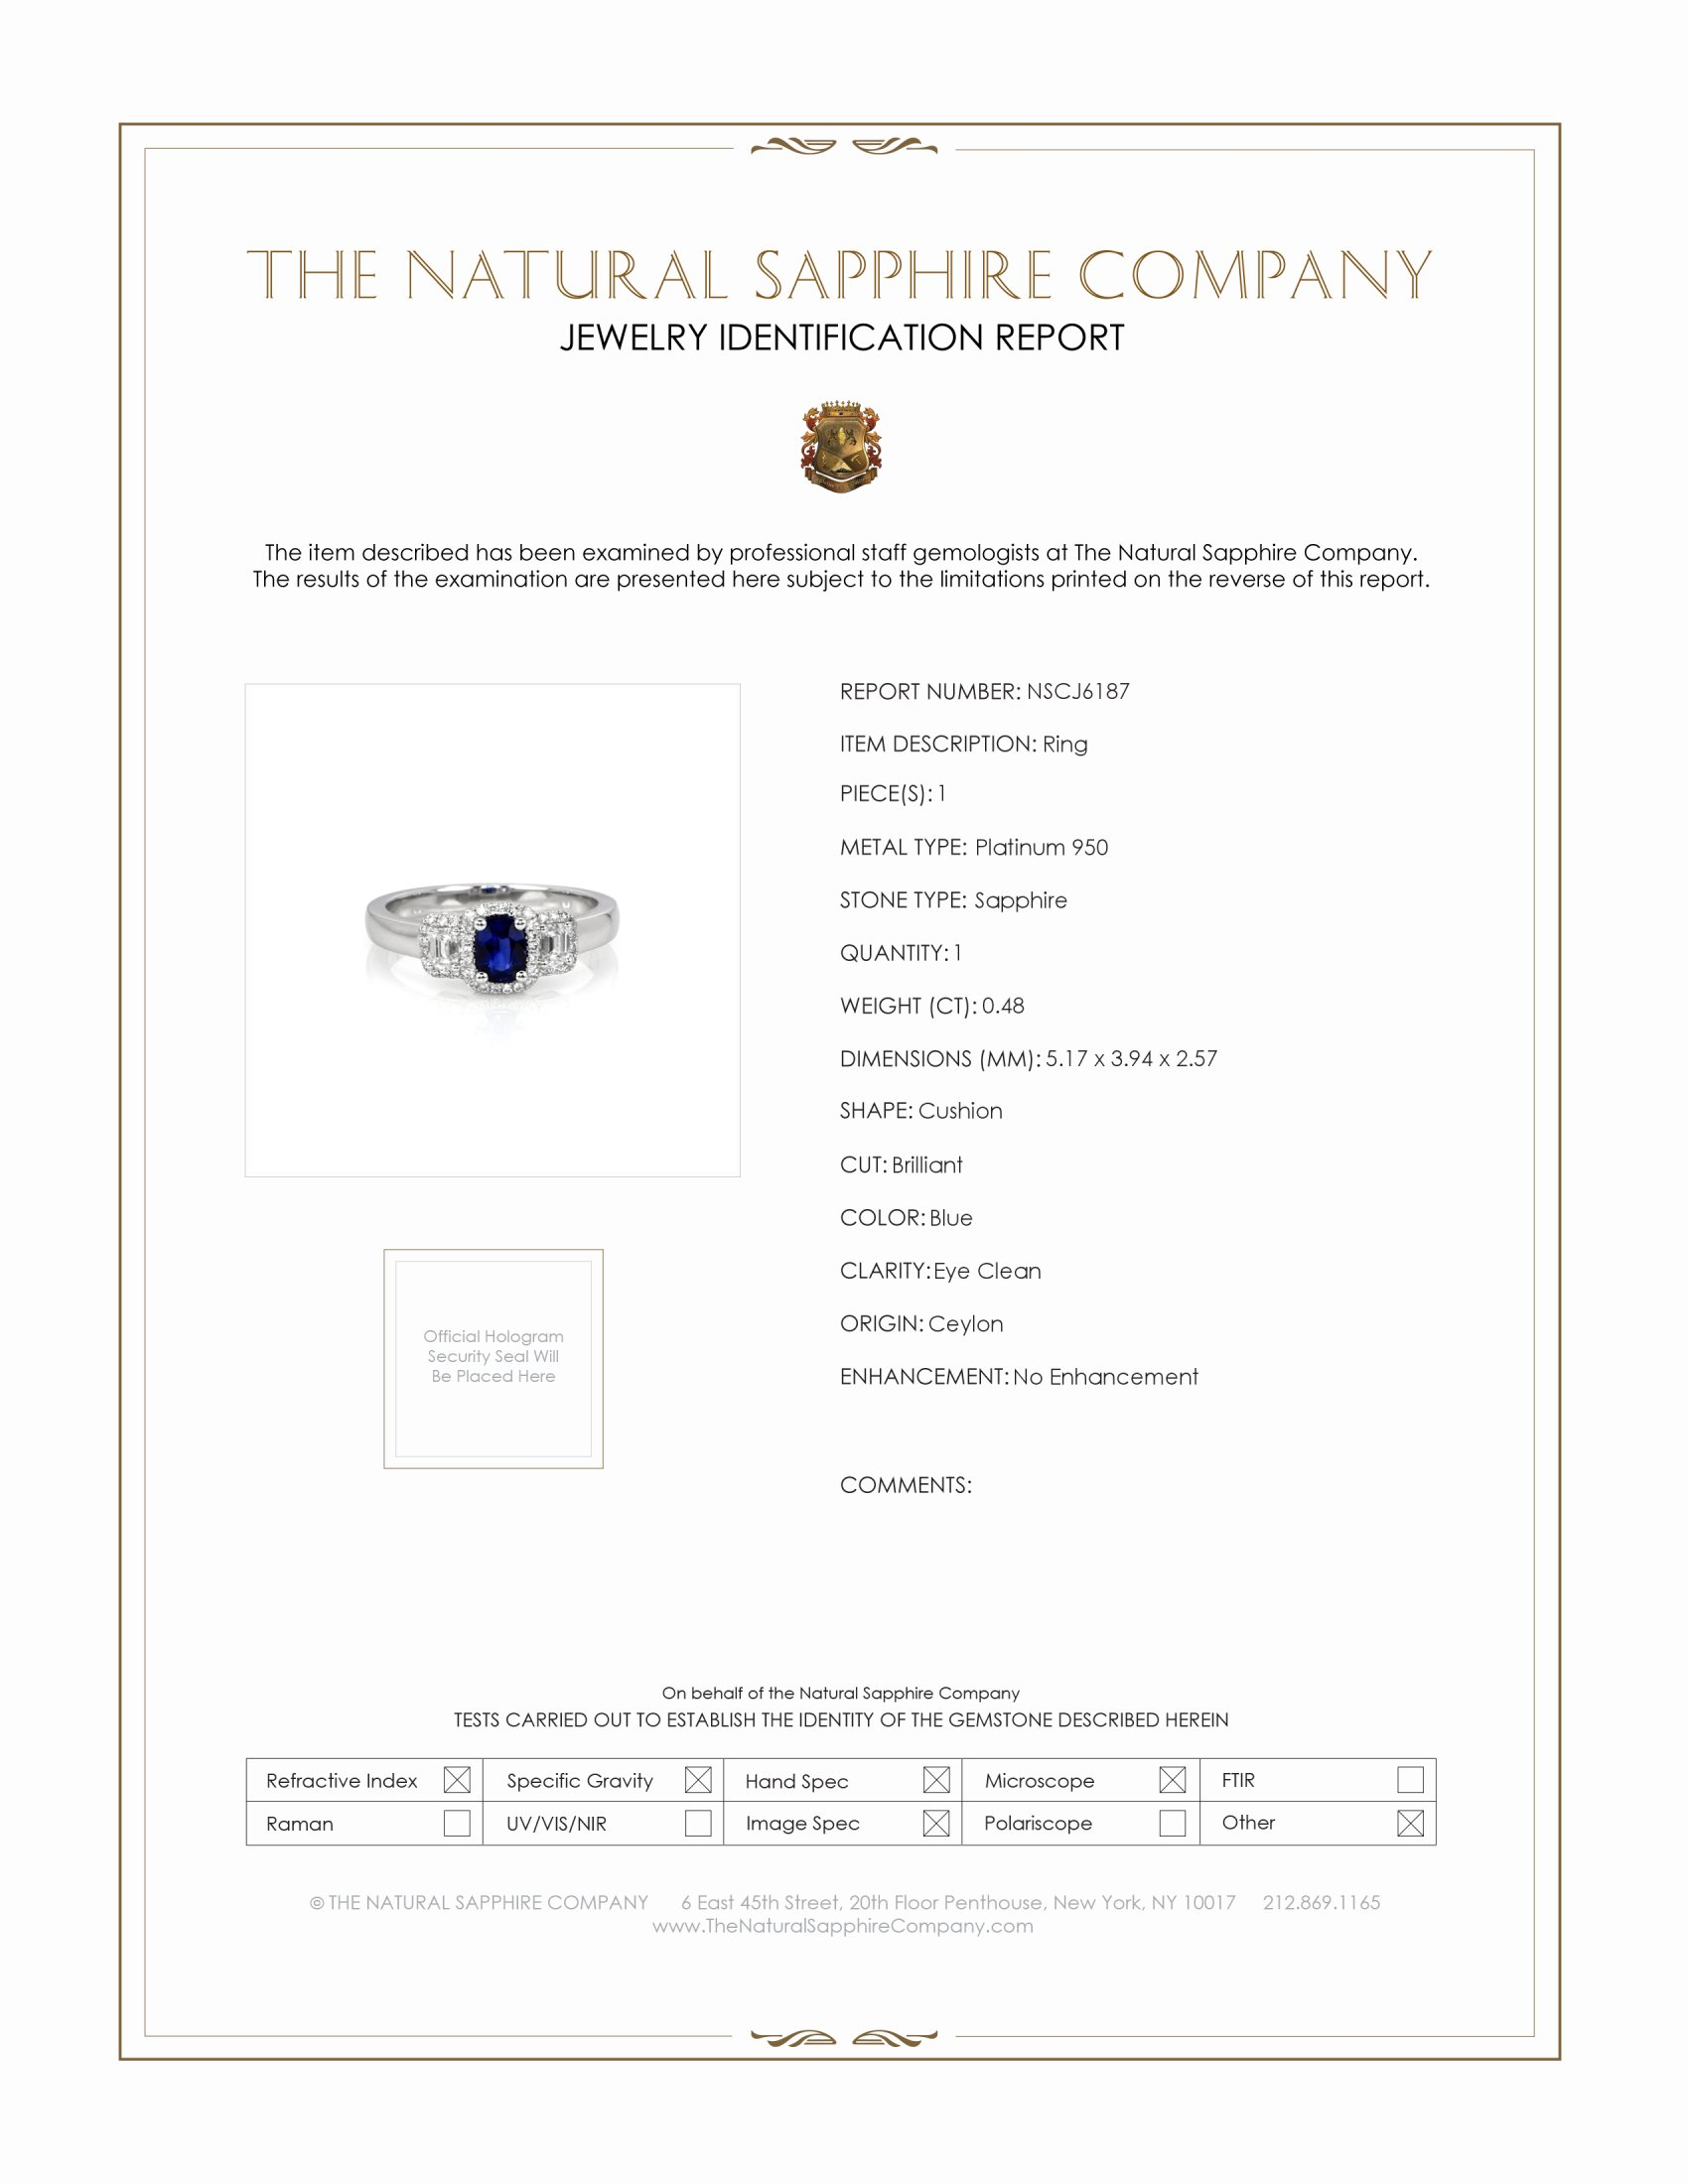 0.48ct Blue Sapphire Ring Certification